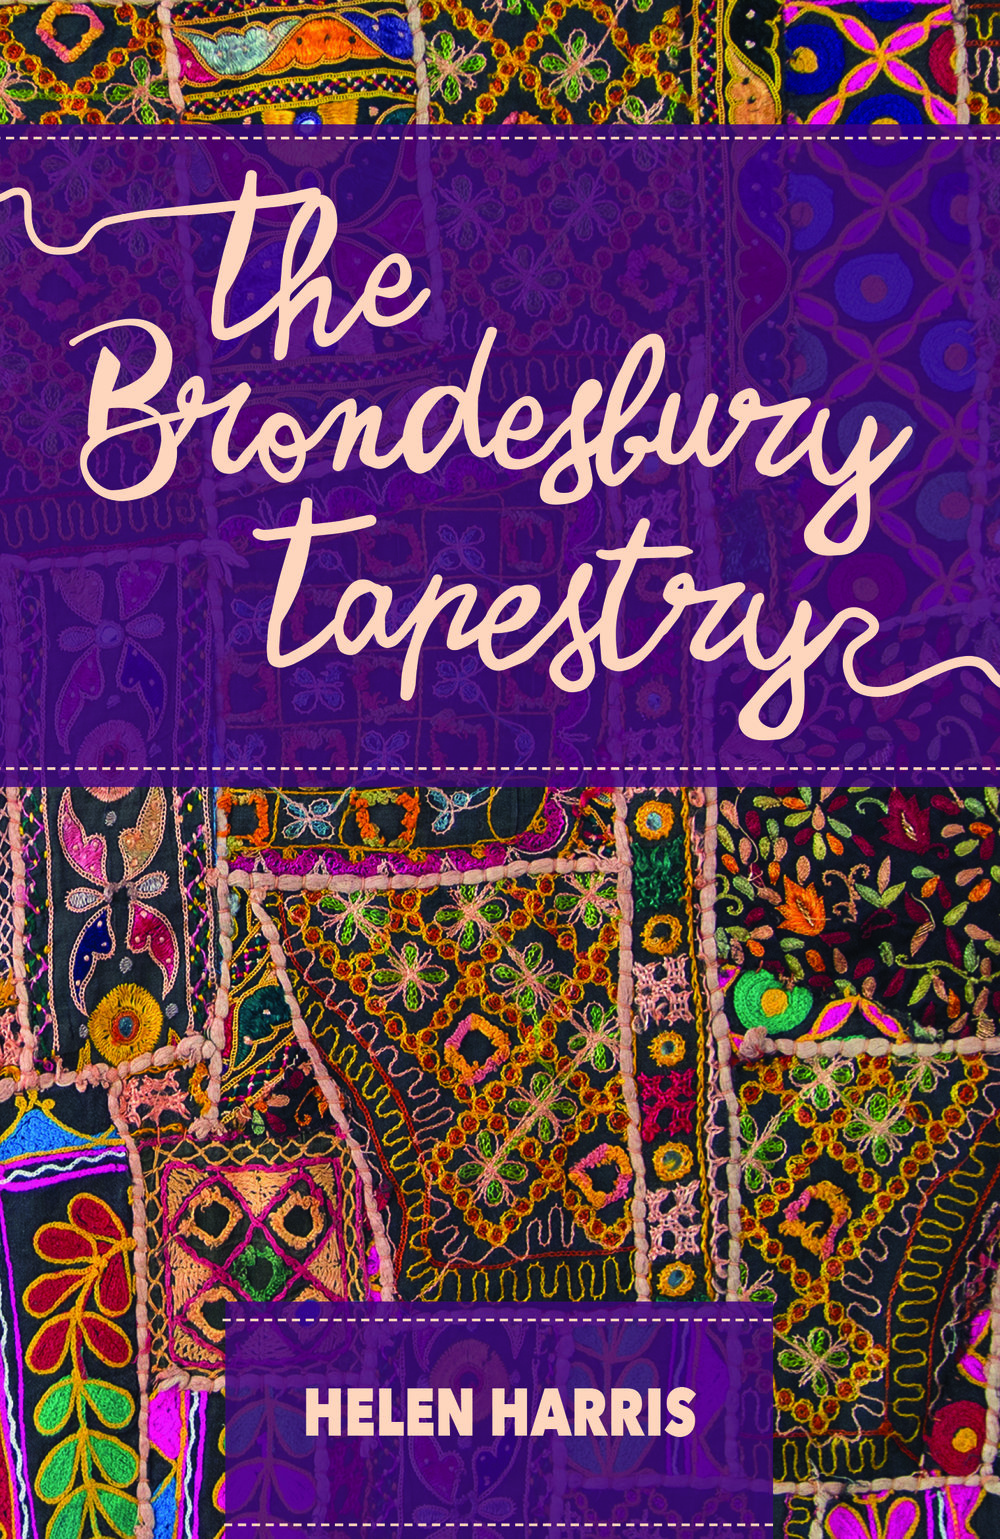 Brondesbury_tapestry LATEST FRONT IMAGE ONLY.jpg